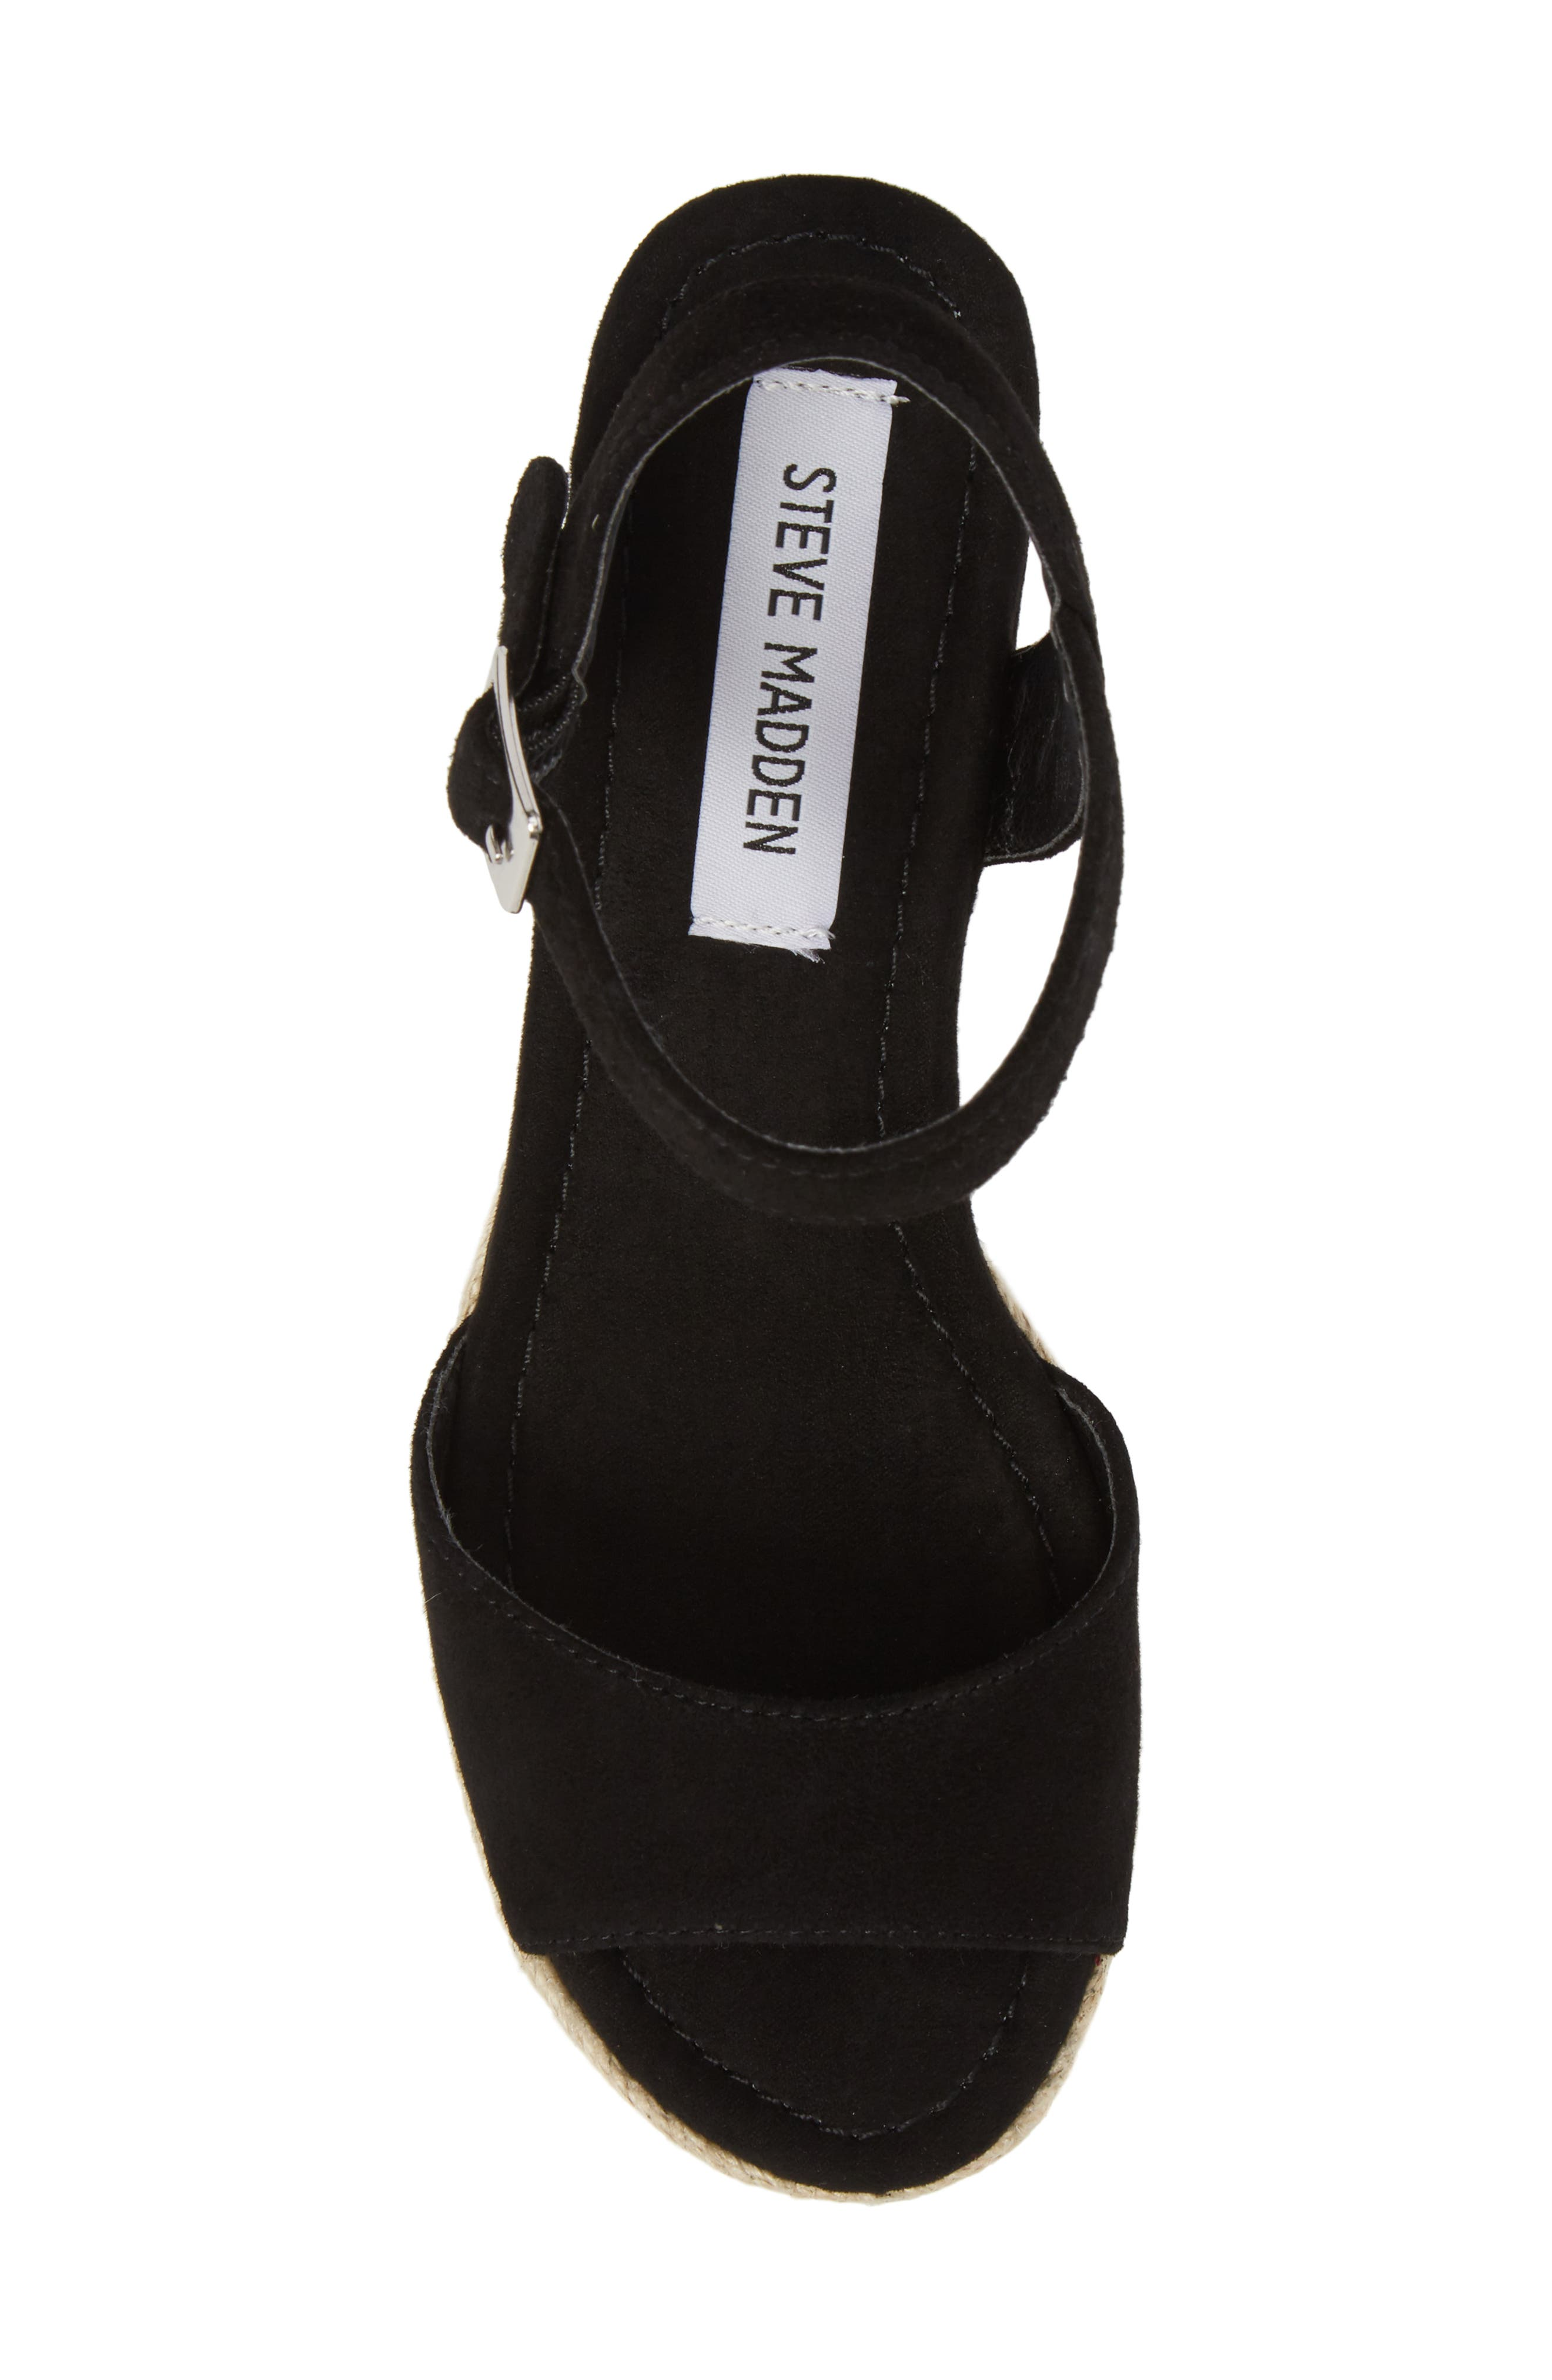 Kianna Espadrille Wedge Sandal,                             Alternate thumbnail 5, color,                             BLACK SUEDE